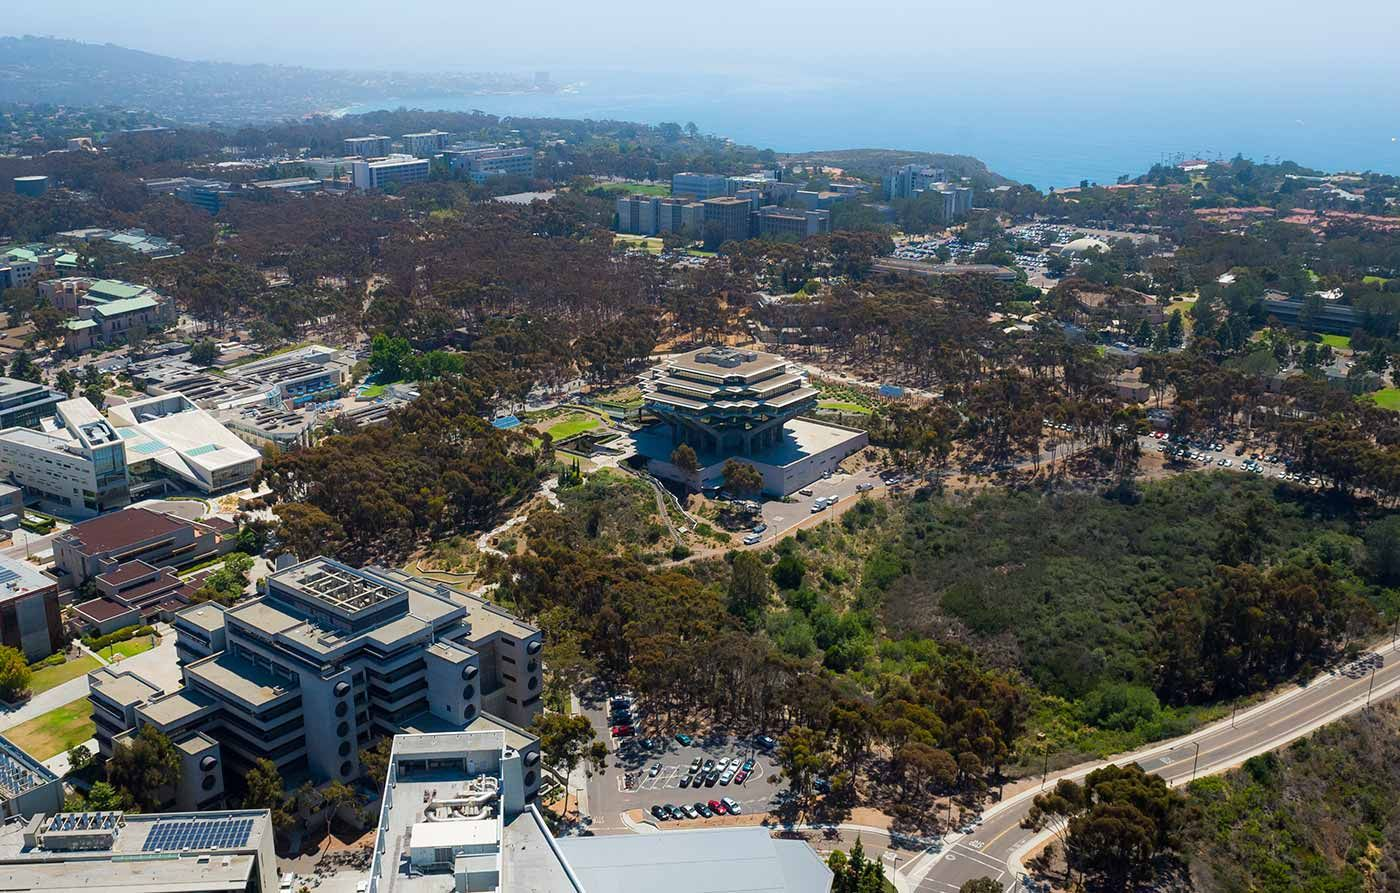 University of California San Diego Ranking